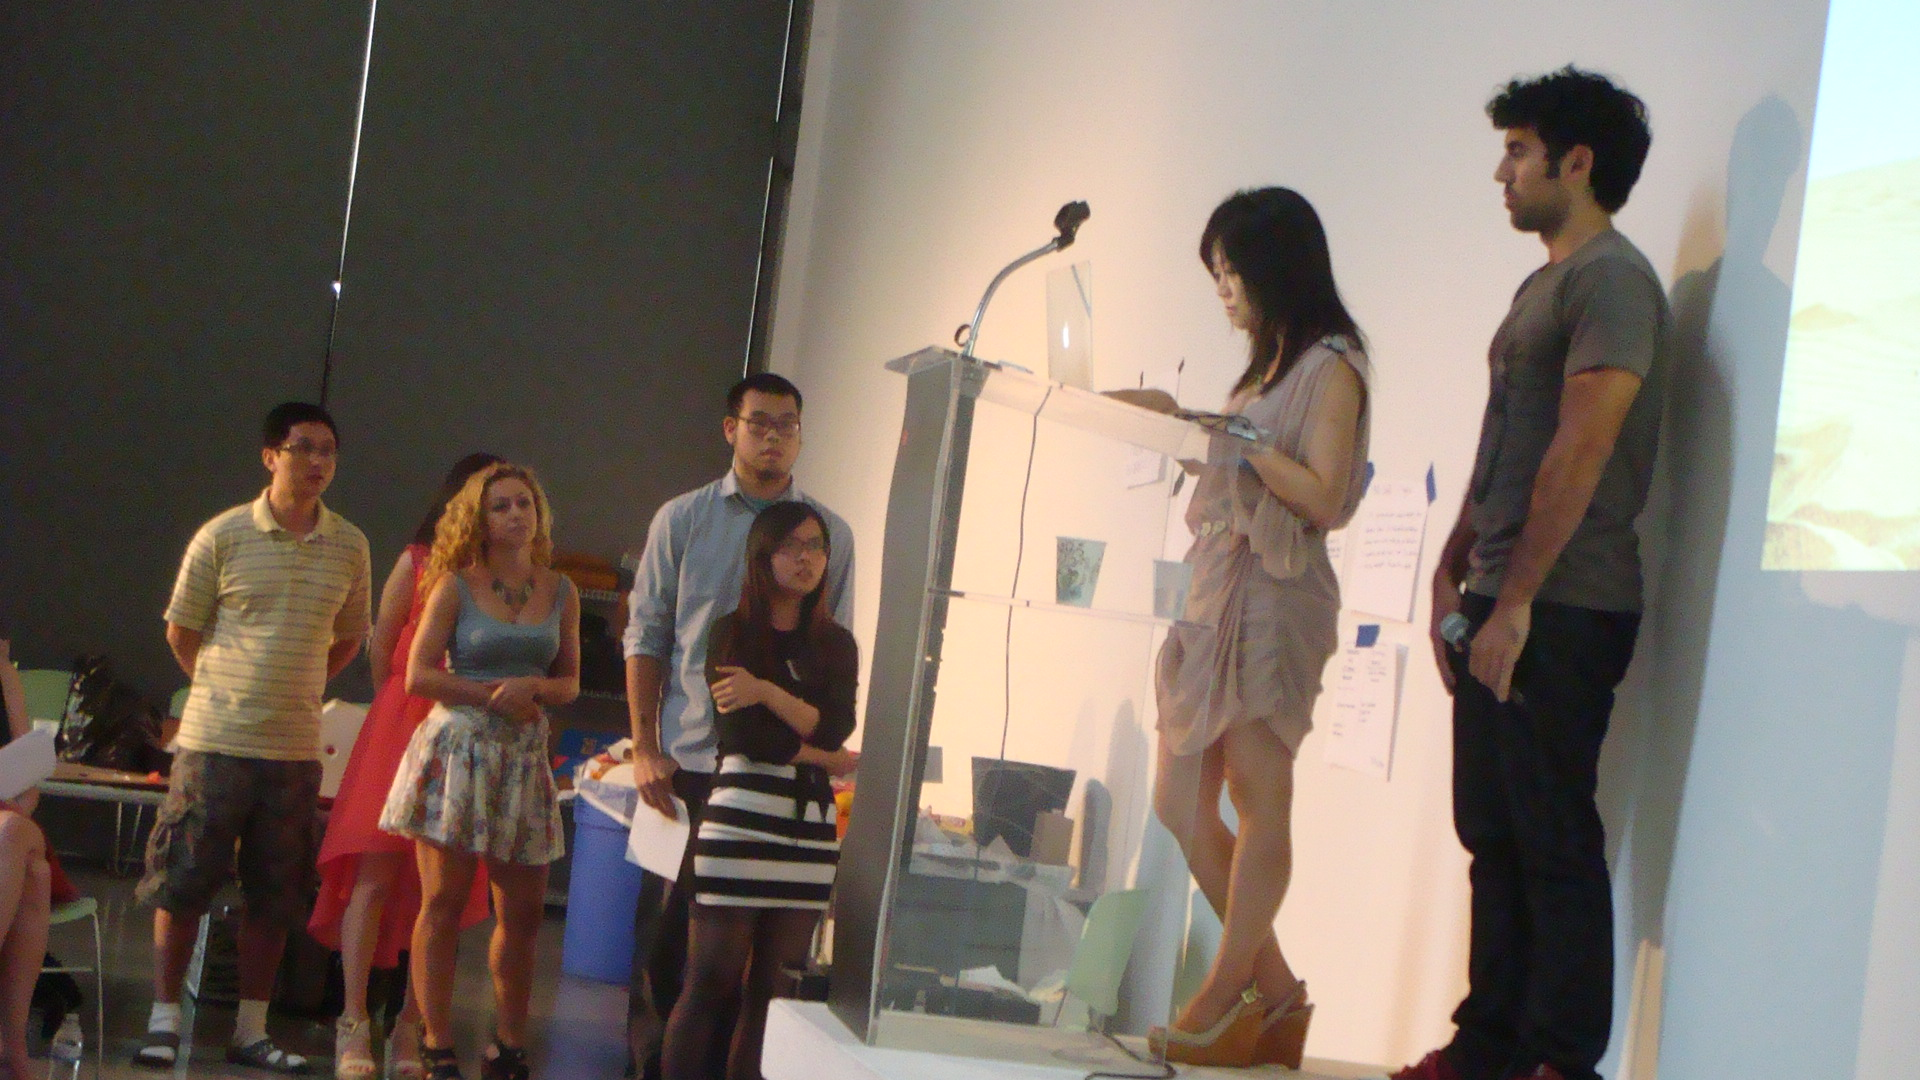 The Compass H2O team standing on stage and next to the stage as the presentation begins